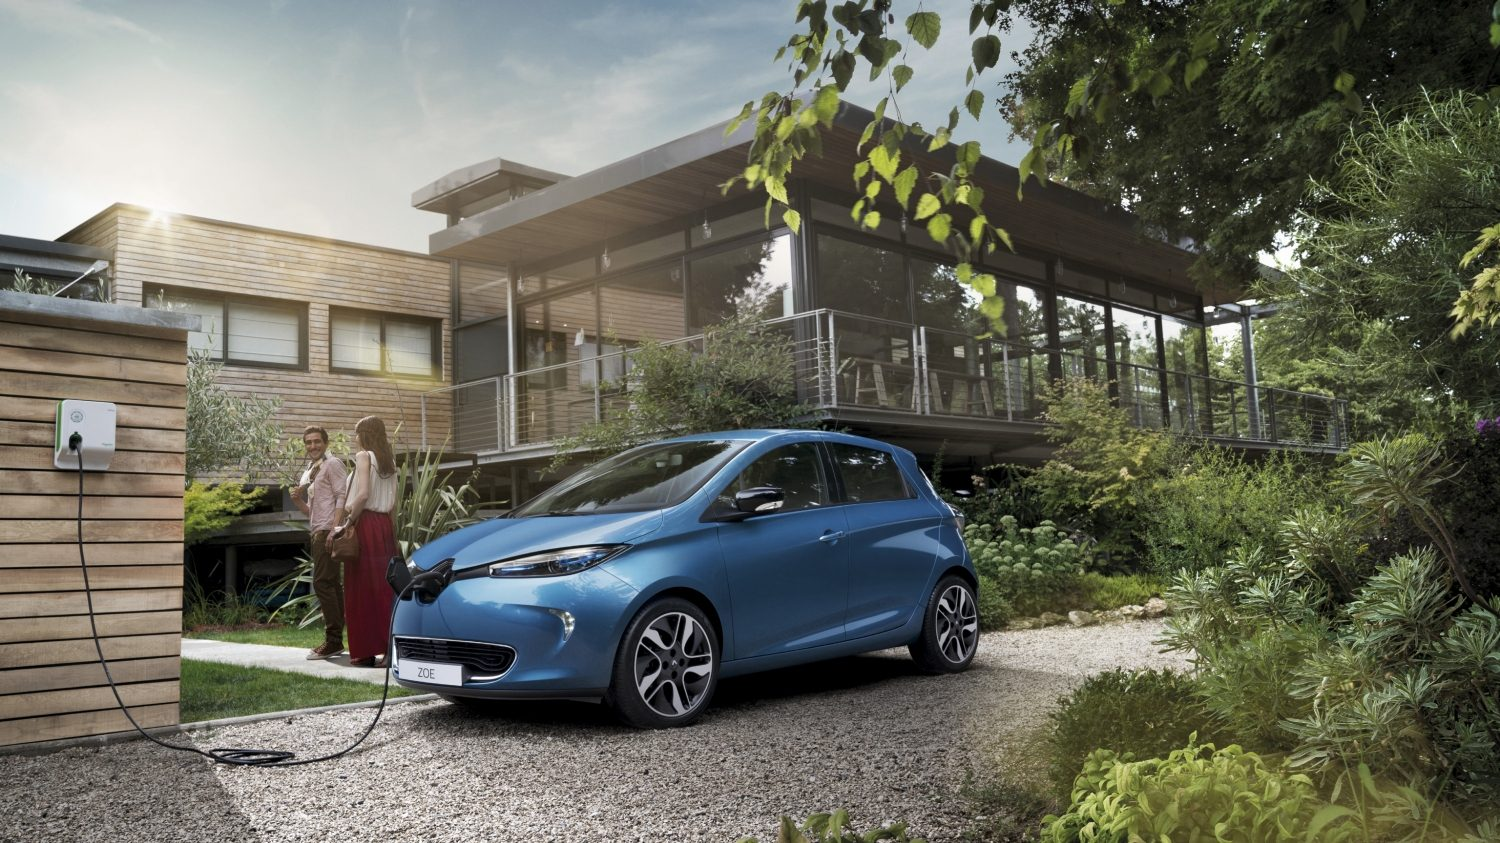 renault-zoe-laddning1